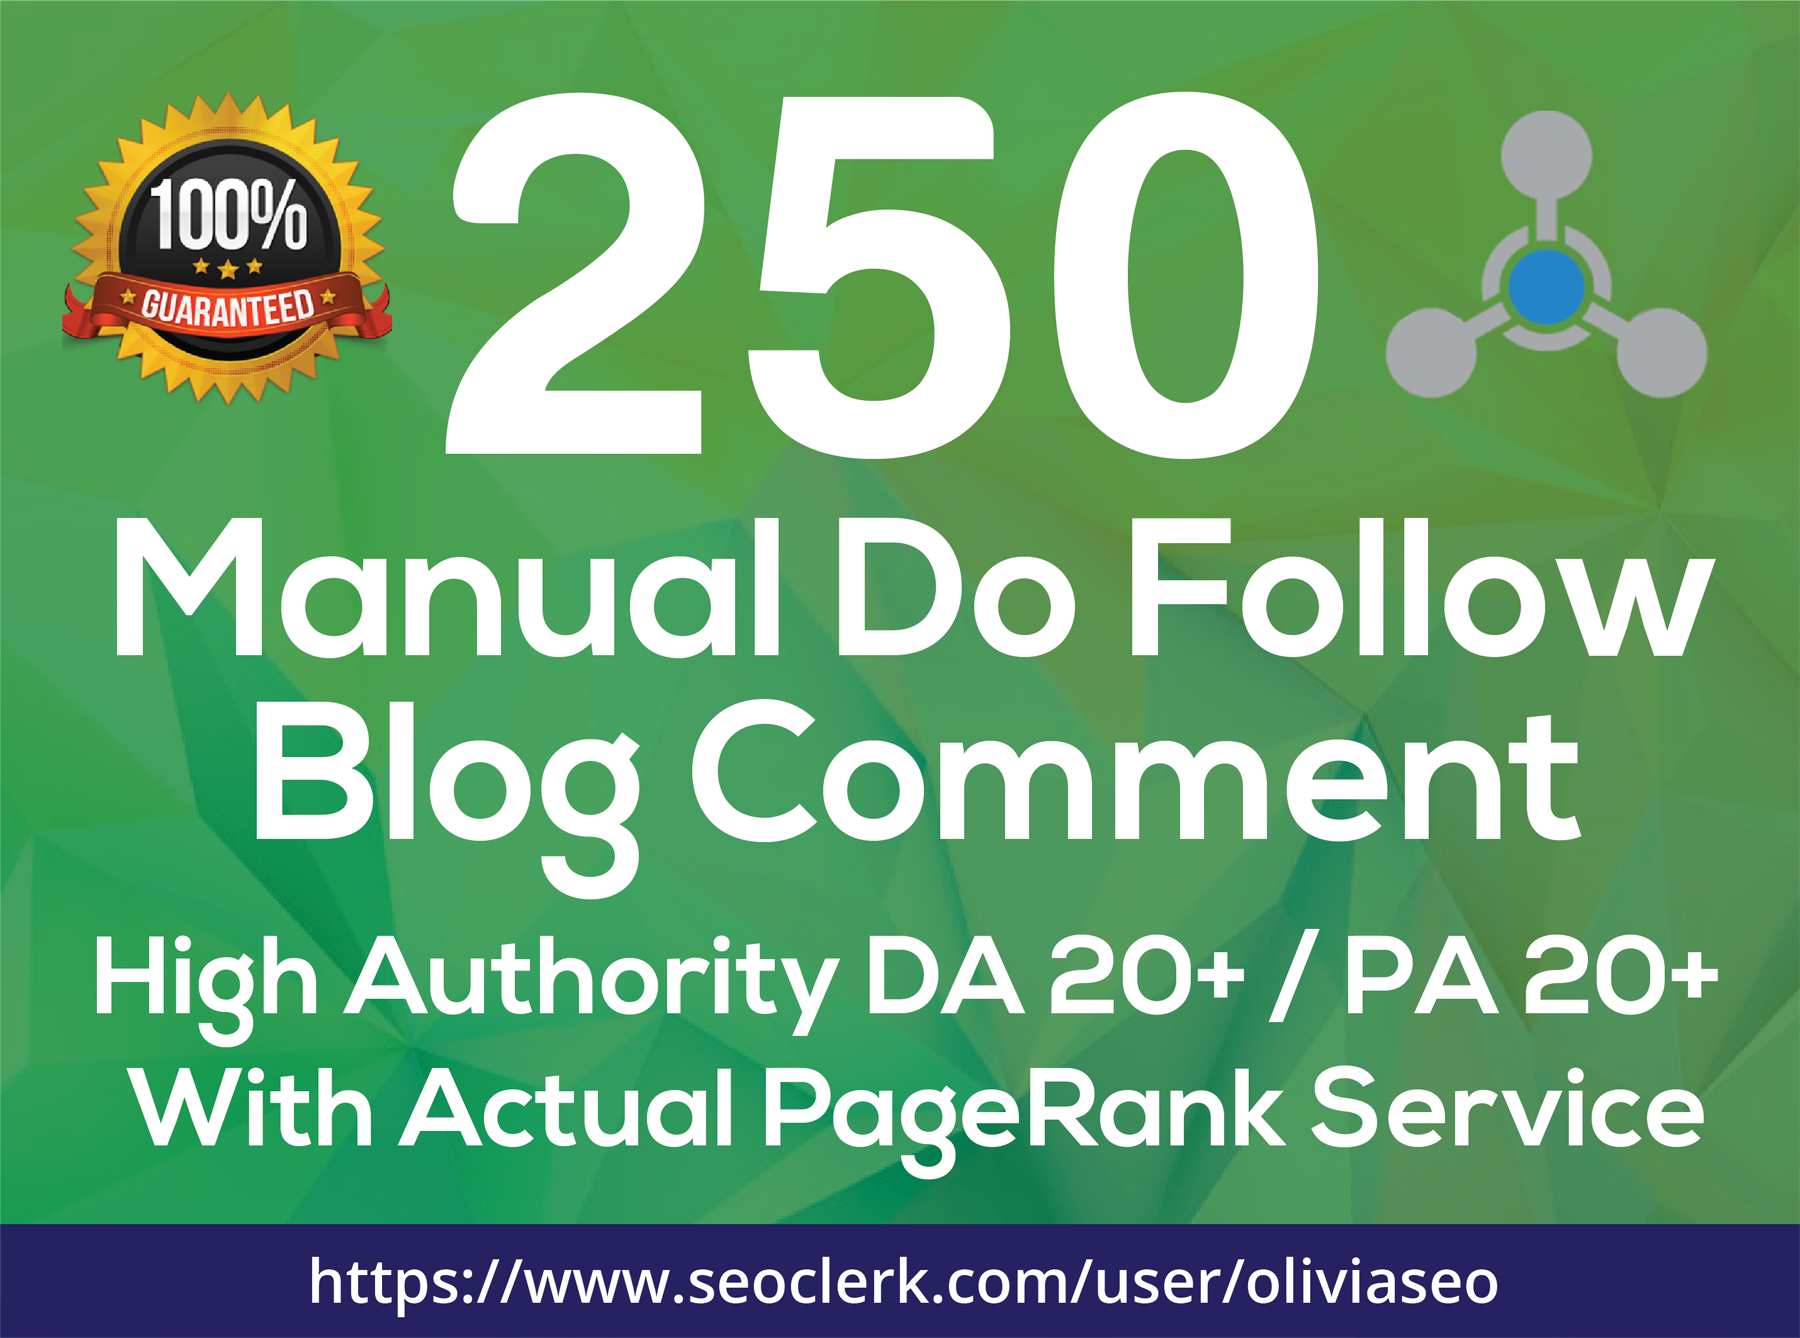 Provide 250 Manual Dofollow Blog Comment Low OBL Backlink